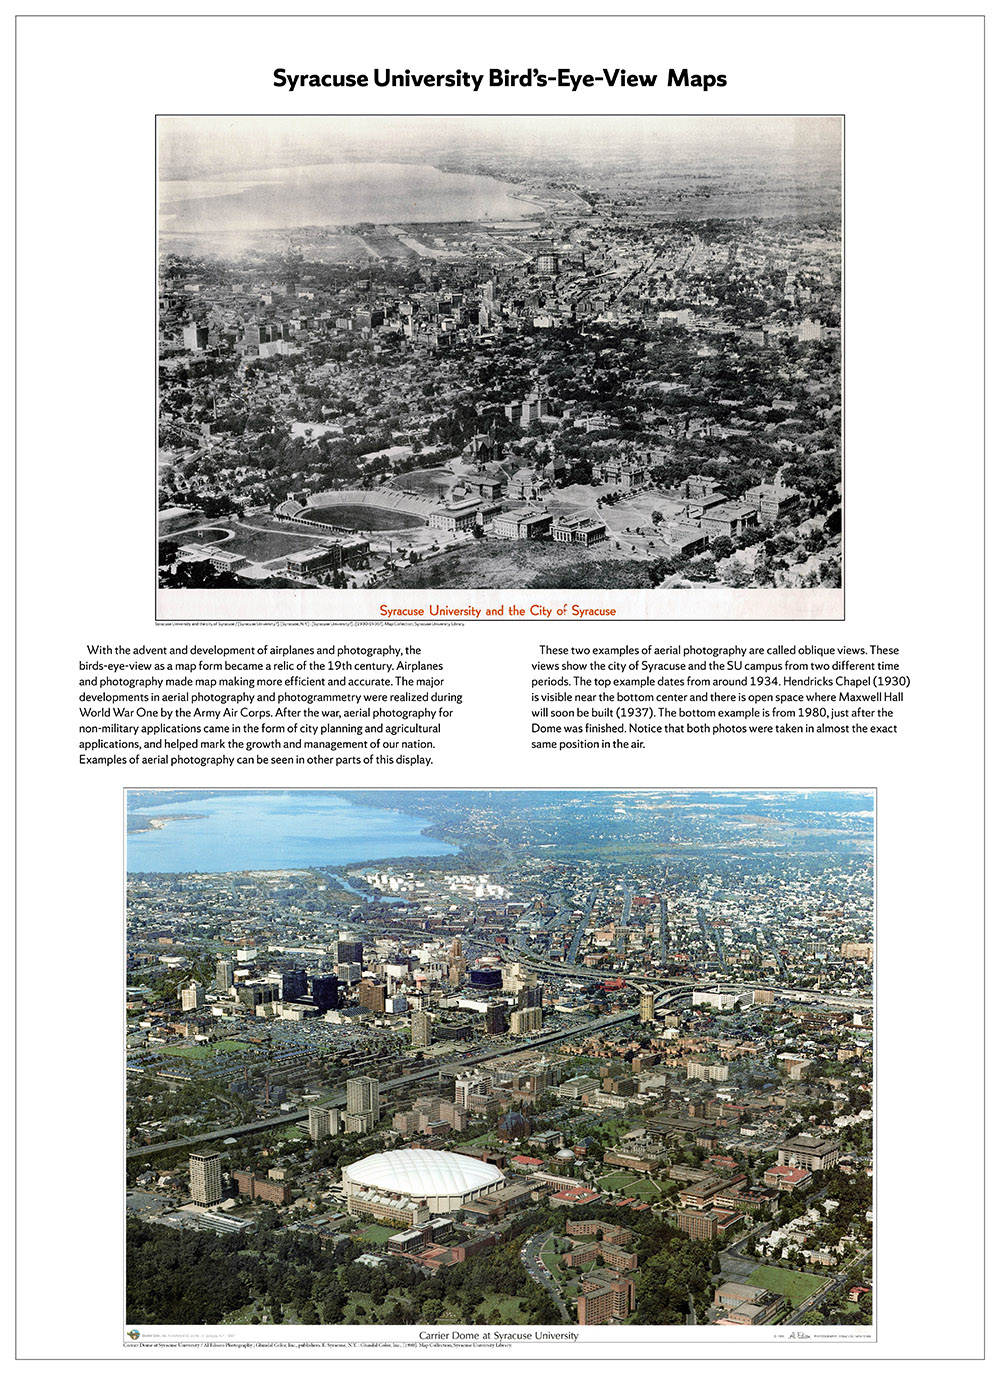 Syracuse University 150 years in maps – 1933 and 1980 panoramic air photos poster